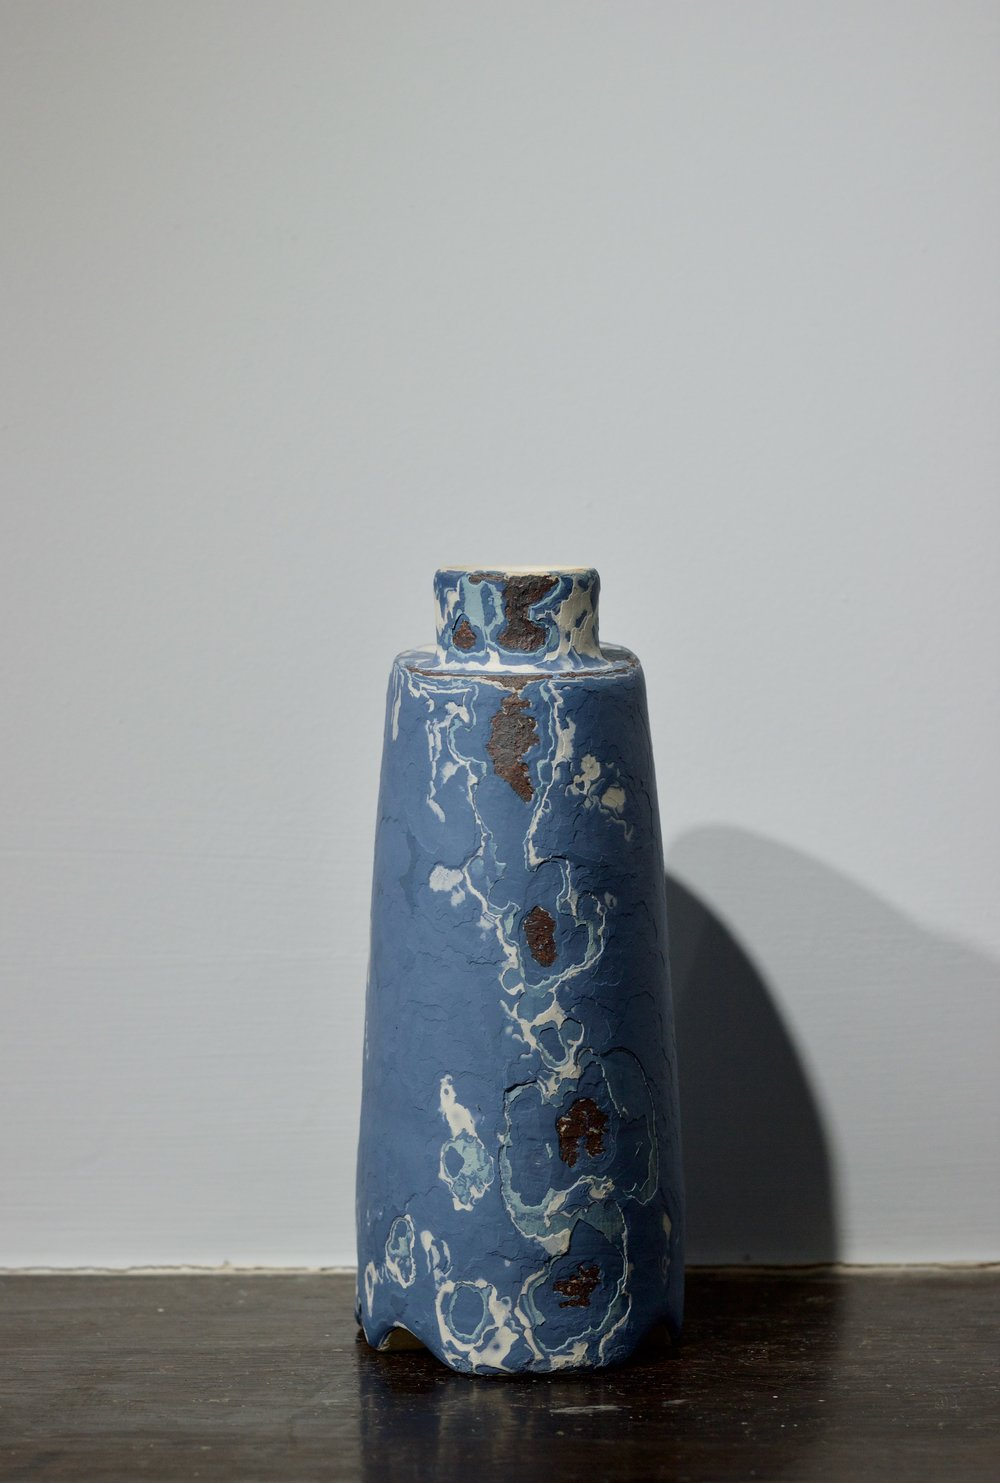 James Faulkner - Small Blue Bottle Vase